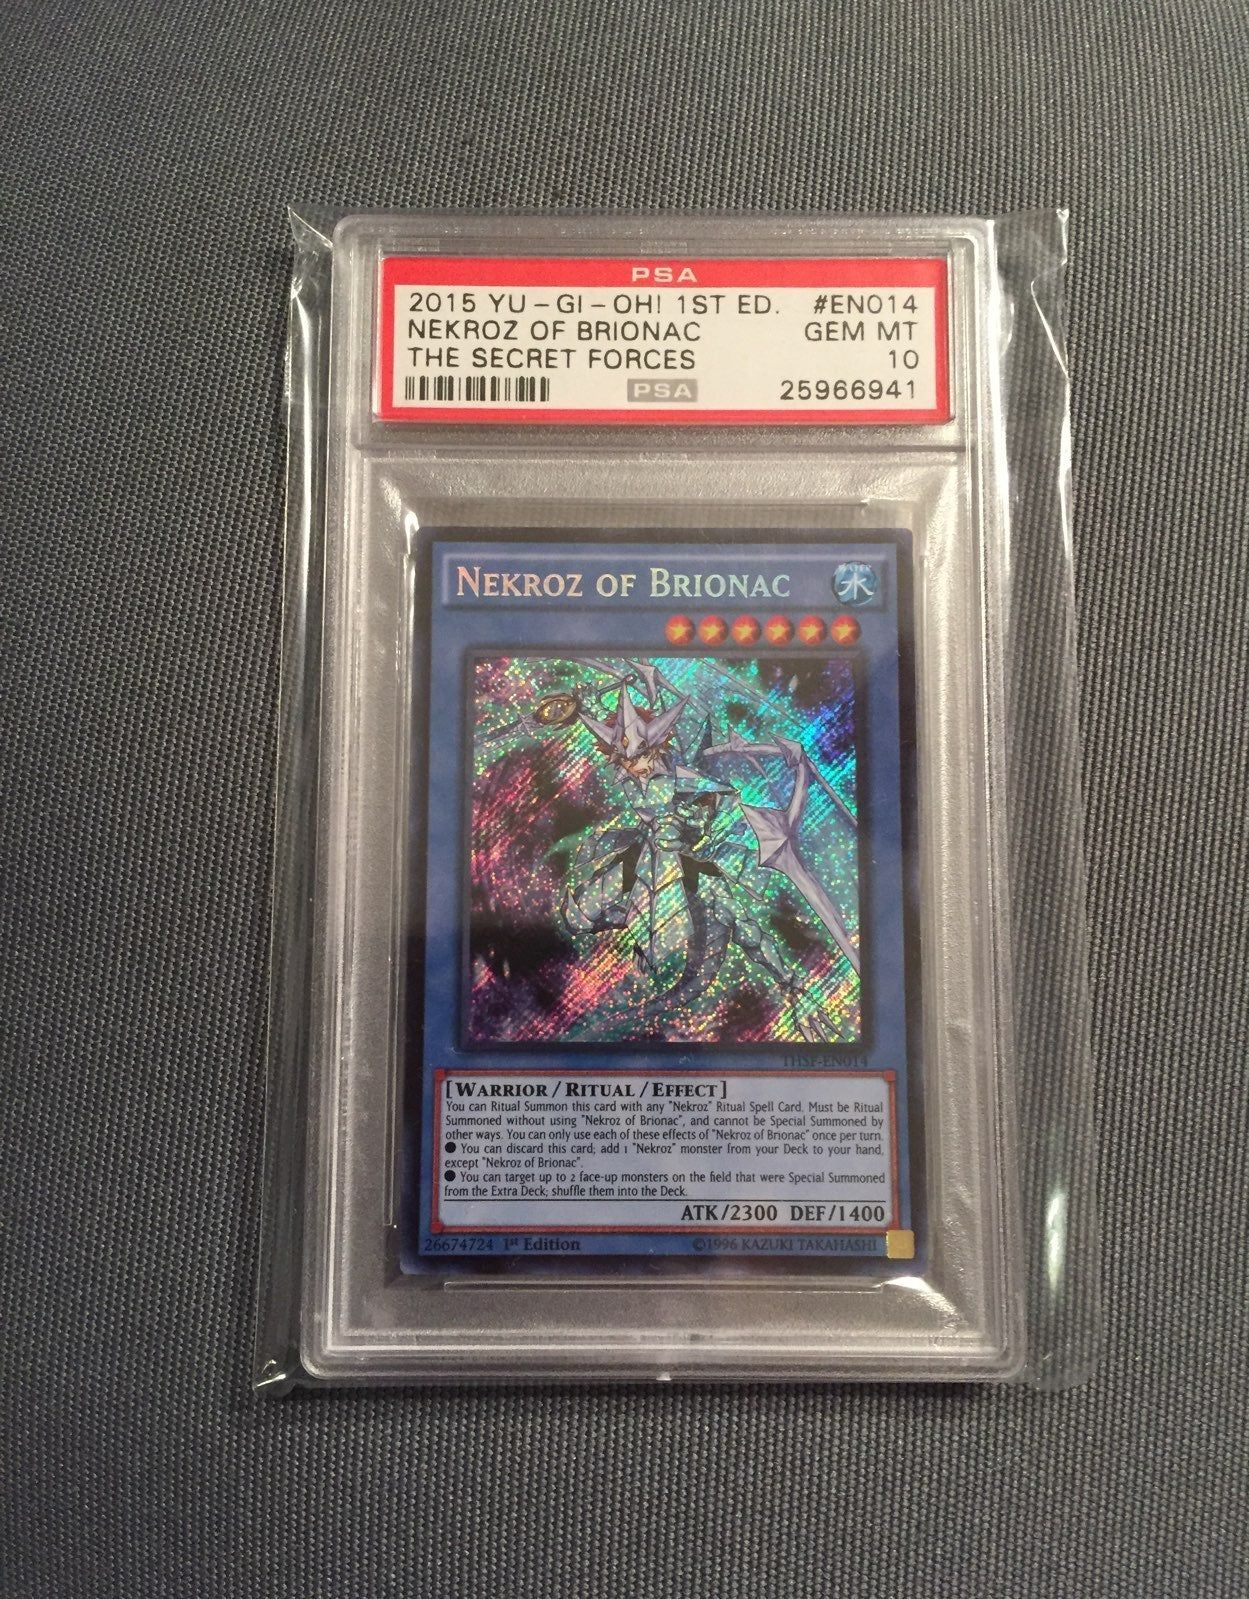 This Is A Listing For A Psa Grade 10 Gem Mint Nekroz Of Brionac